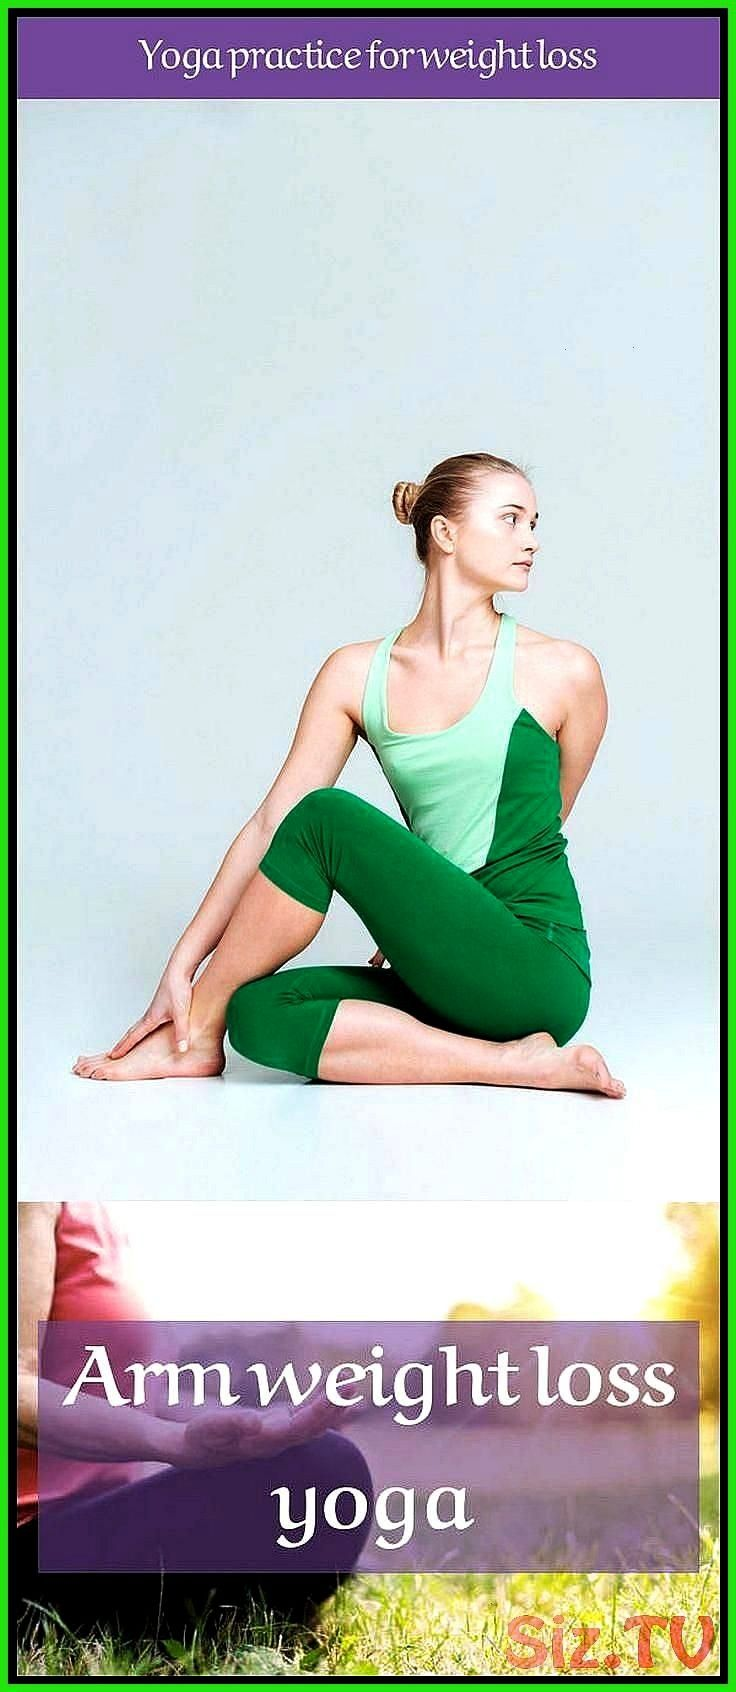 practice for weight loss Sitting yoga poses for weight loss If long term weight loss is your purpose your key to success isn t a diet regime Yoga practice for weight loss...